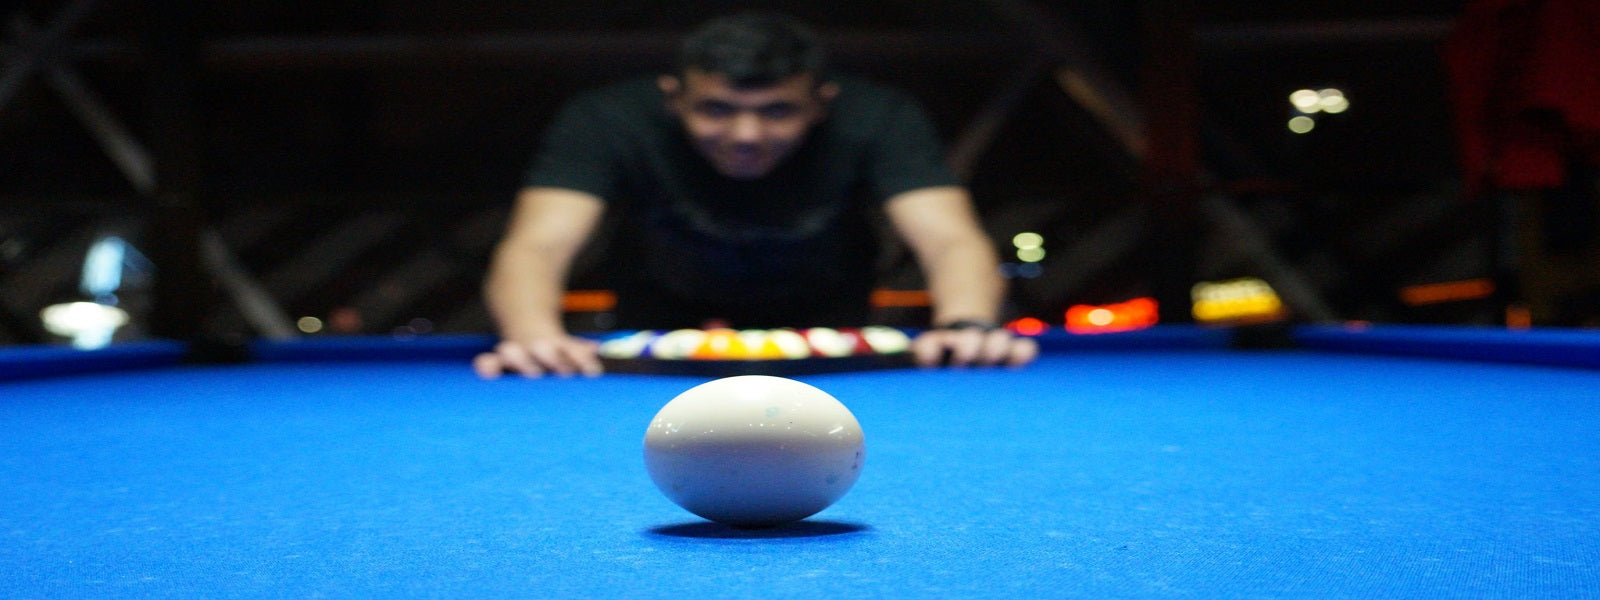 image of a pool player over table - absolute cues